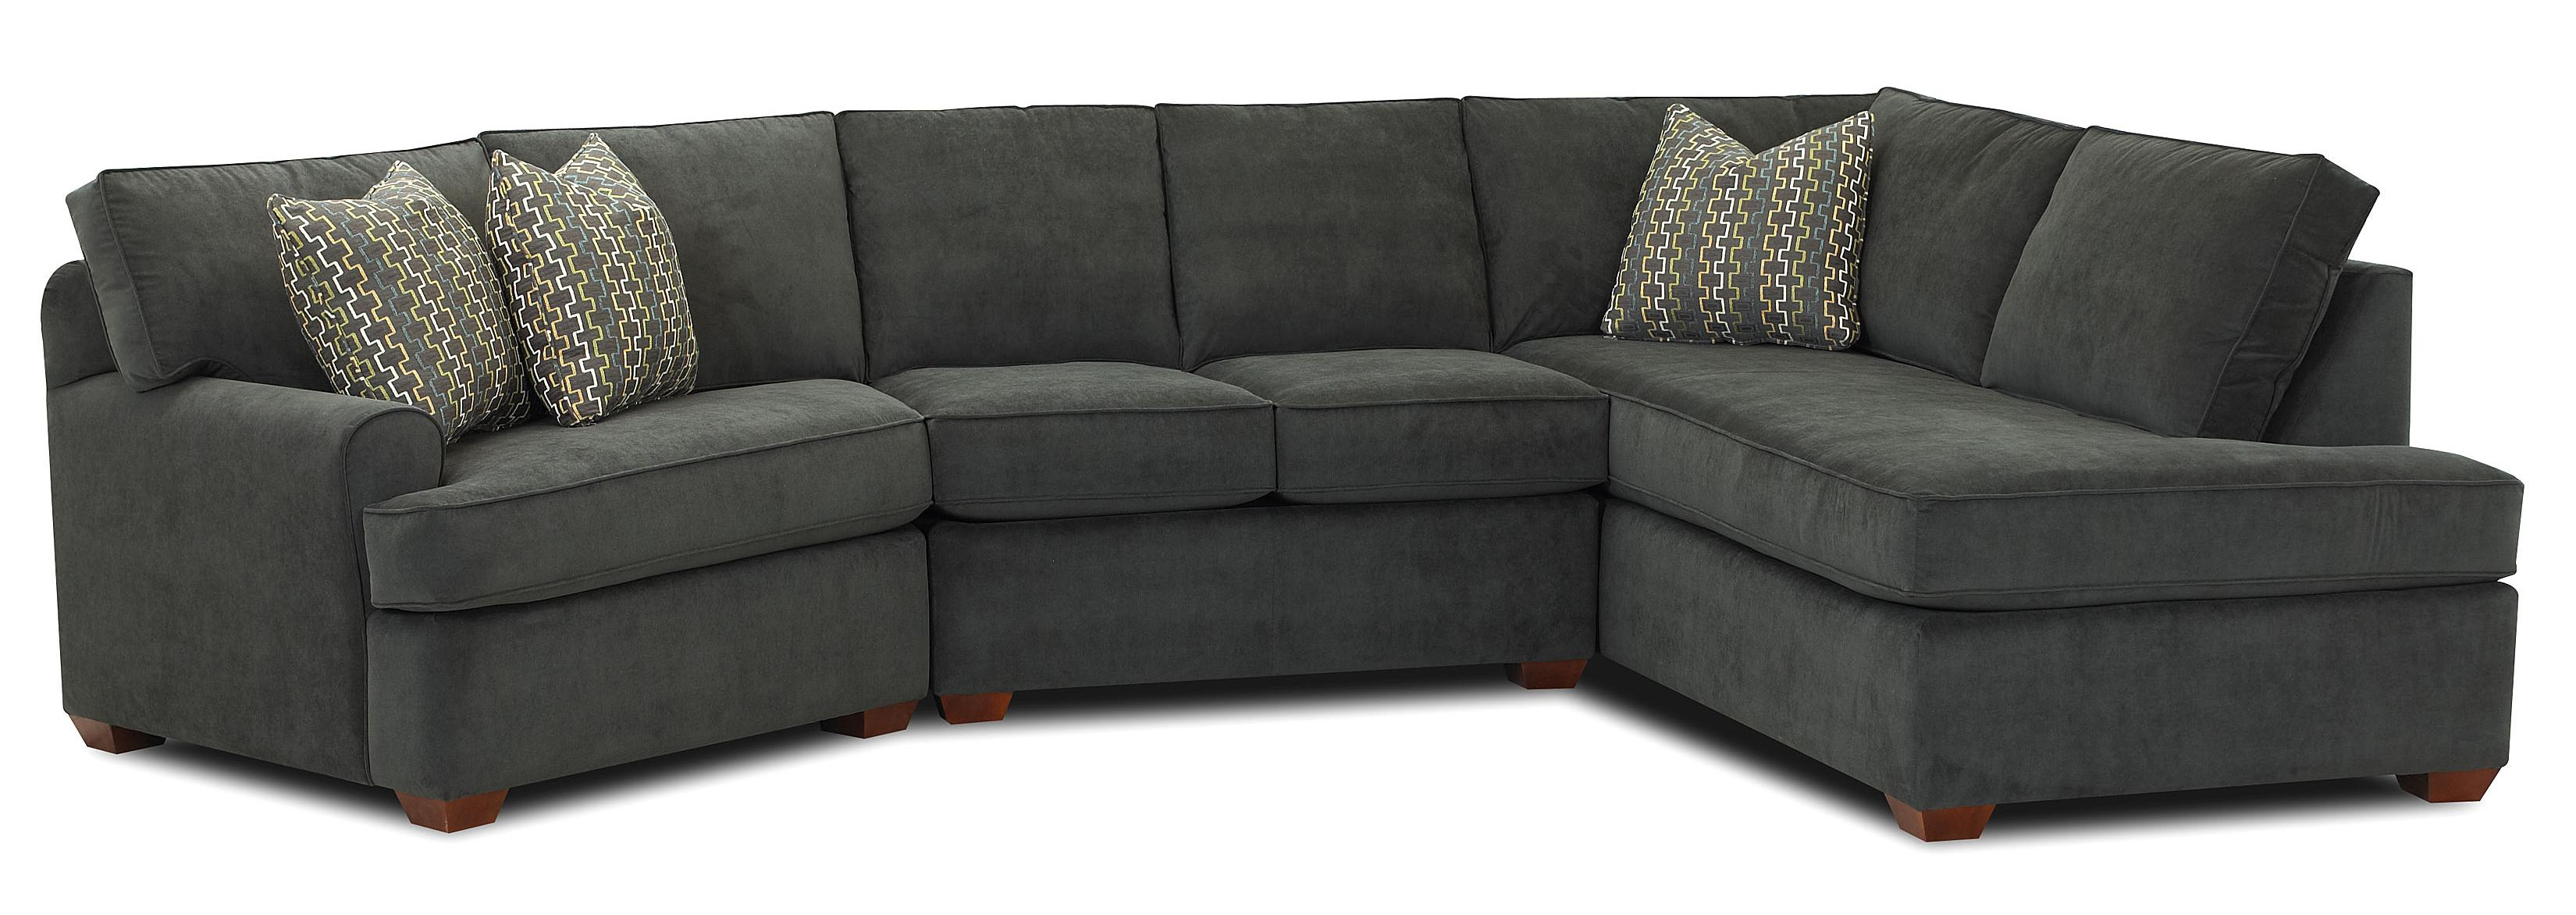 Sectional sofa with right facing sofa chaise by klaussner for Chaise and ottoman